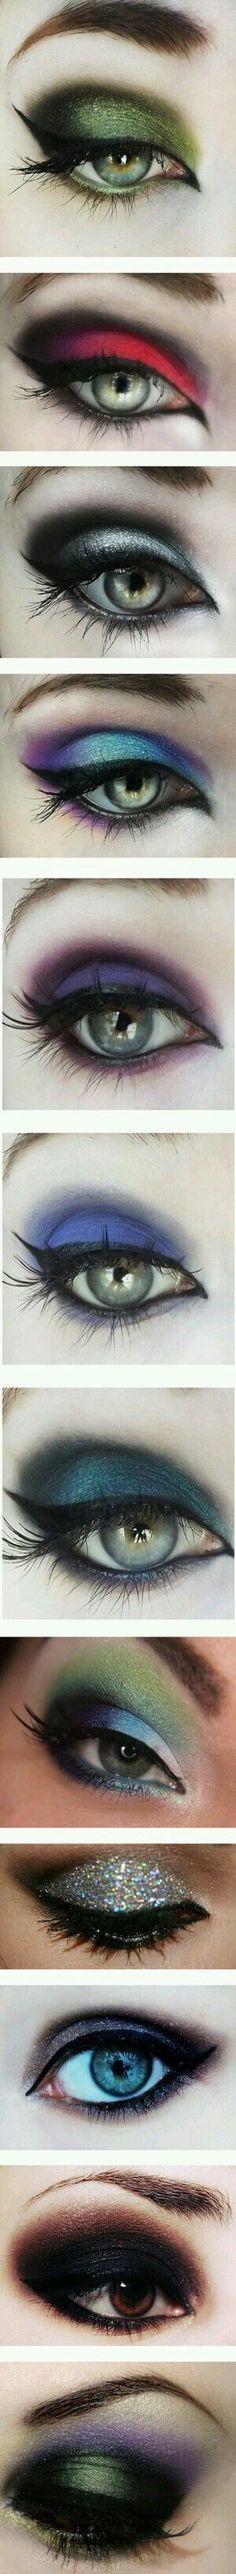 Winter colors https://www.steampunkartifacts.com/collections/steampunk-glasses #colorfuleyeshadows #eyemakeupsmokey